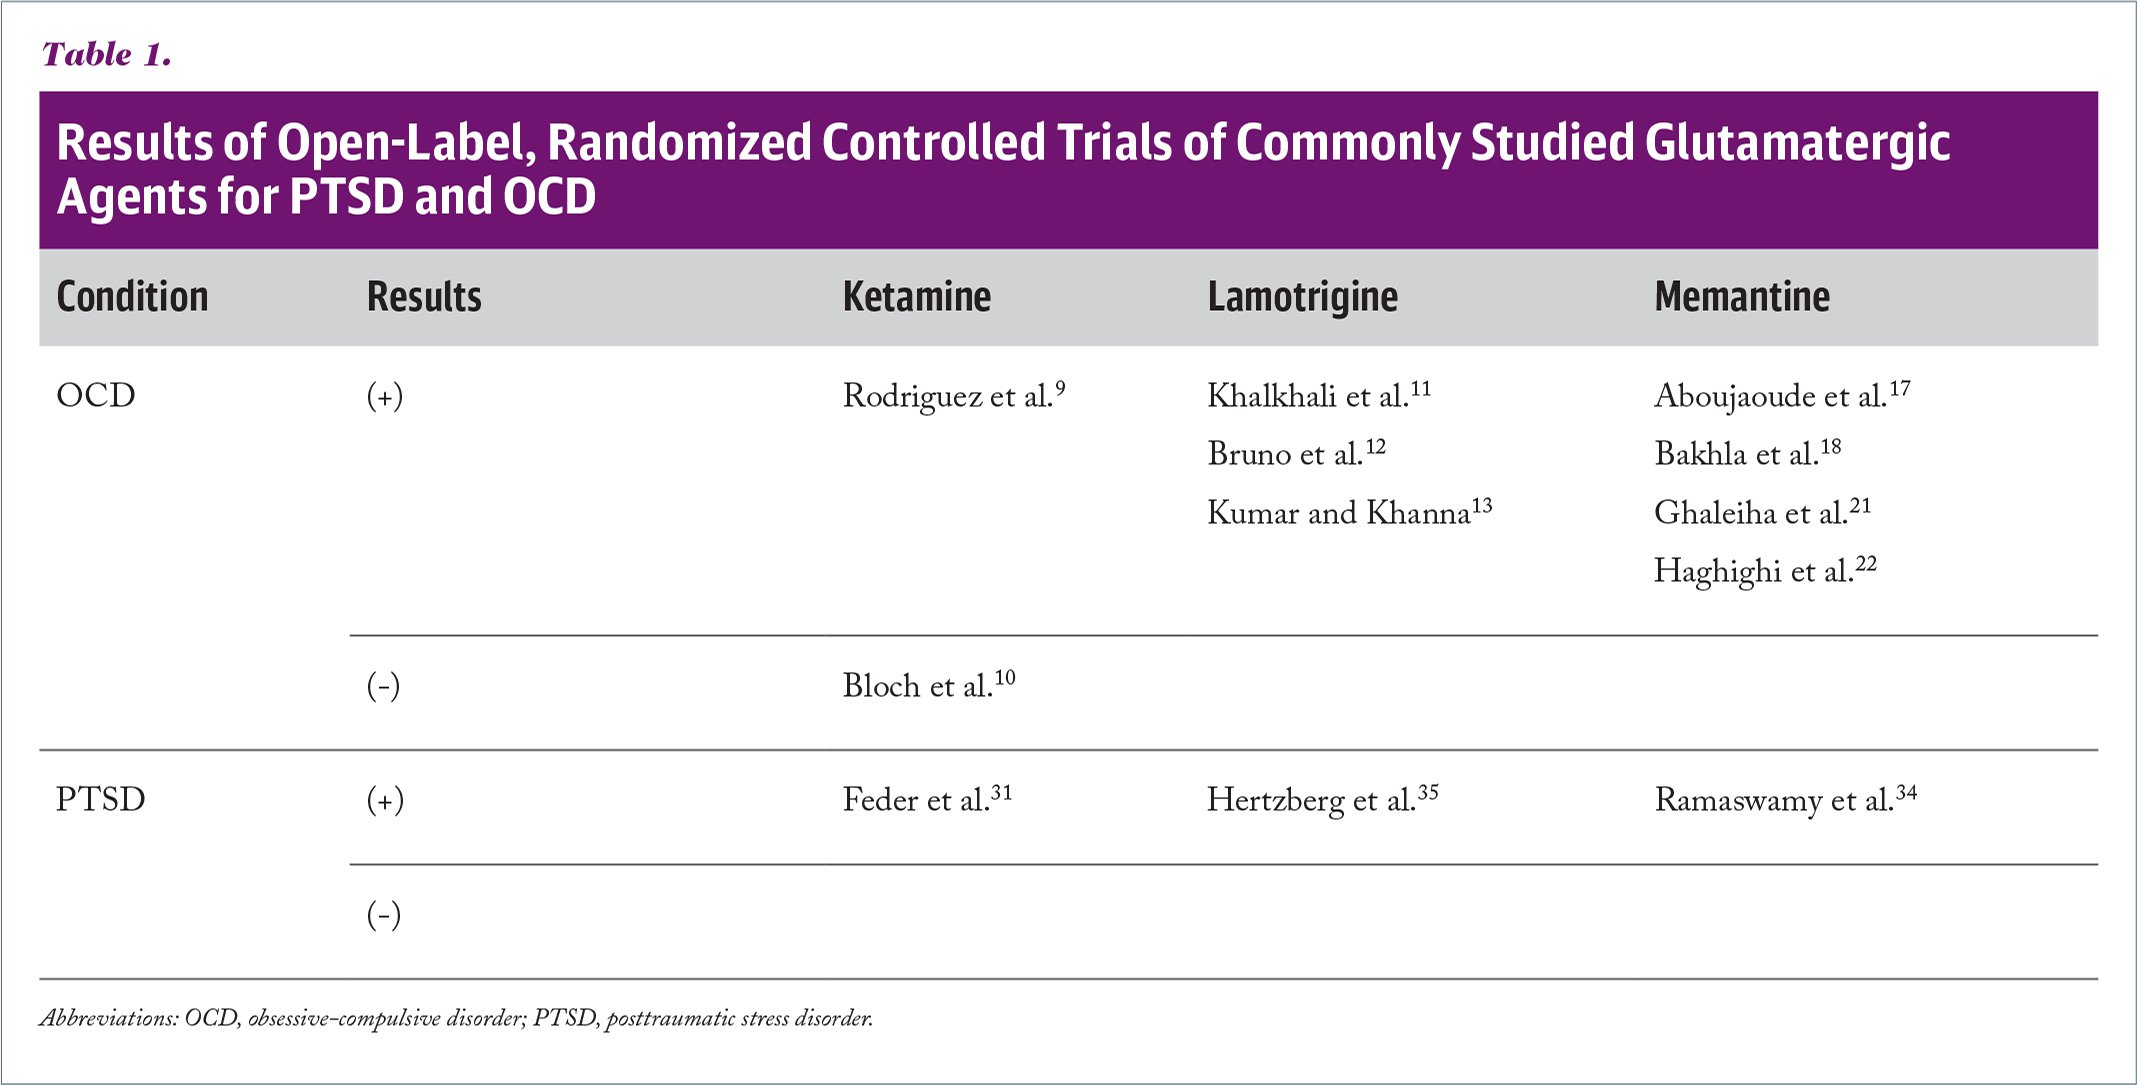 Results of Open-Label, Randomized Controlled Trials of Commonly Studied Glutamatergic Agents for PTSD and OCD